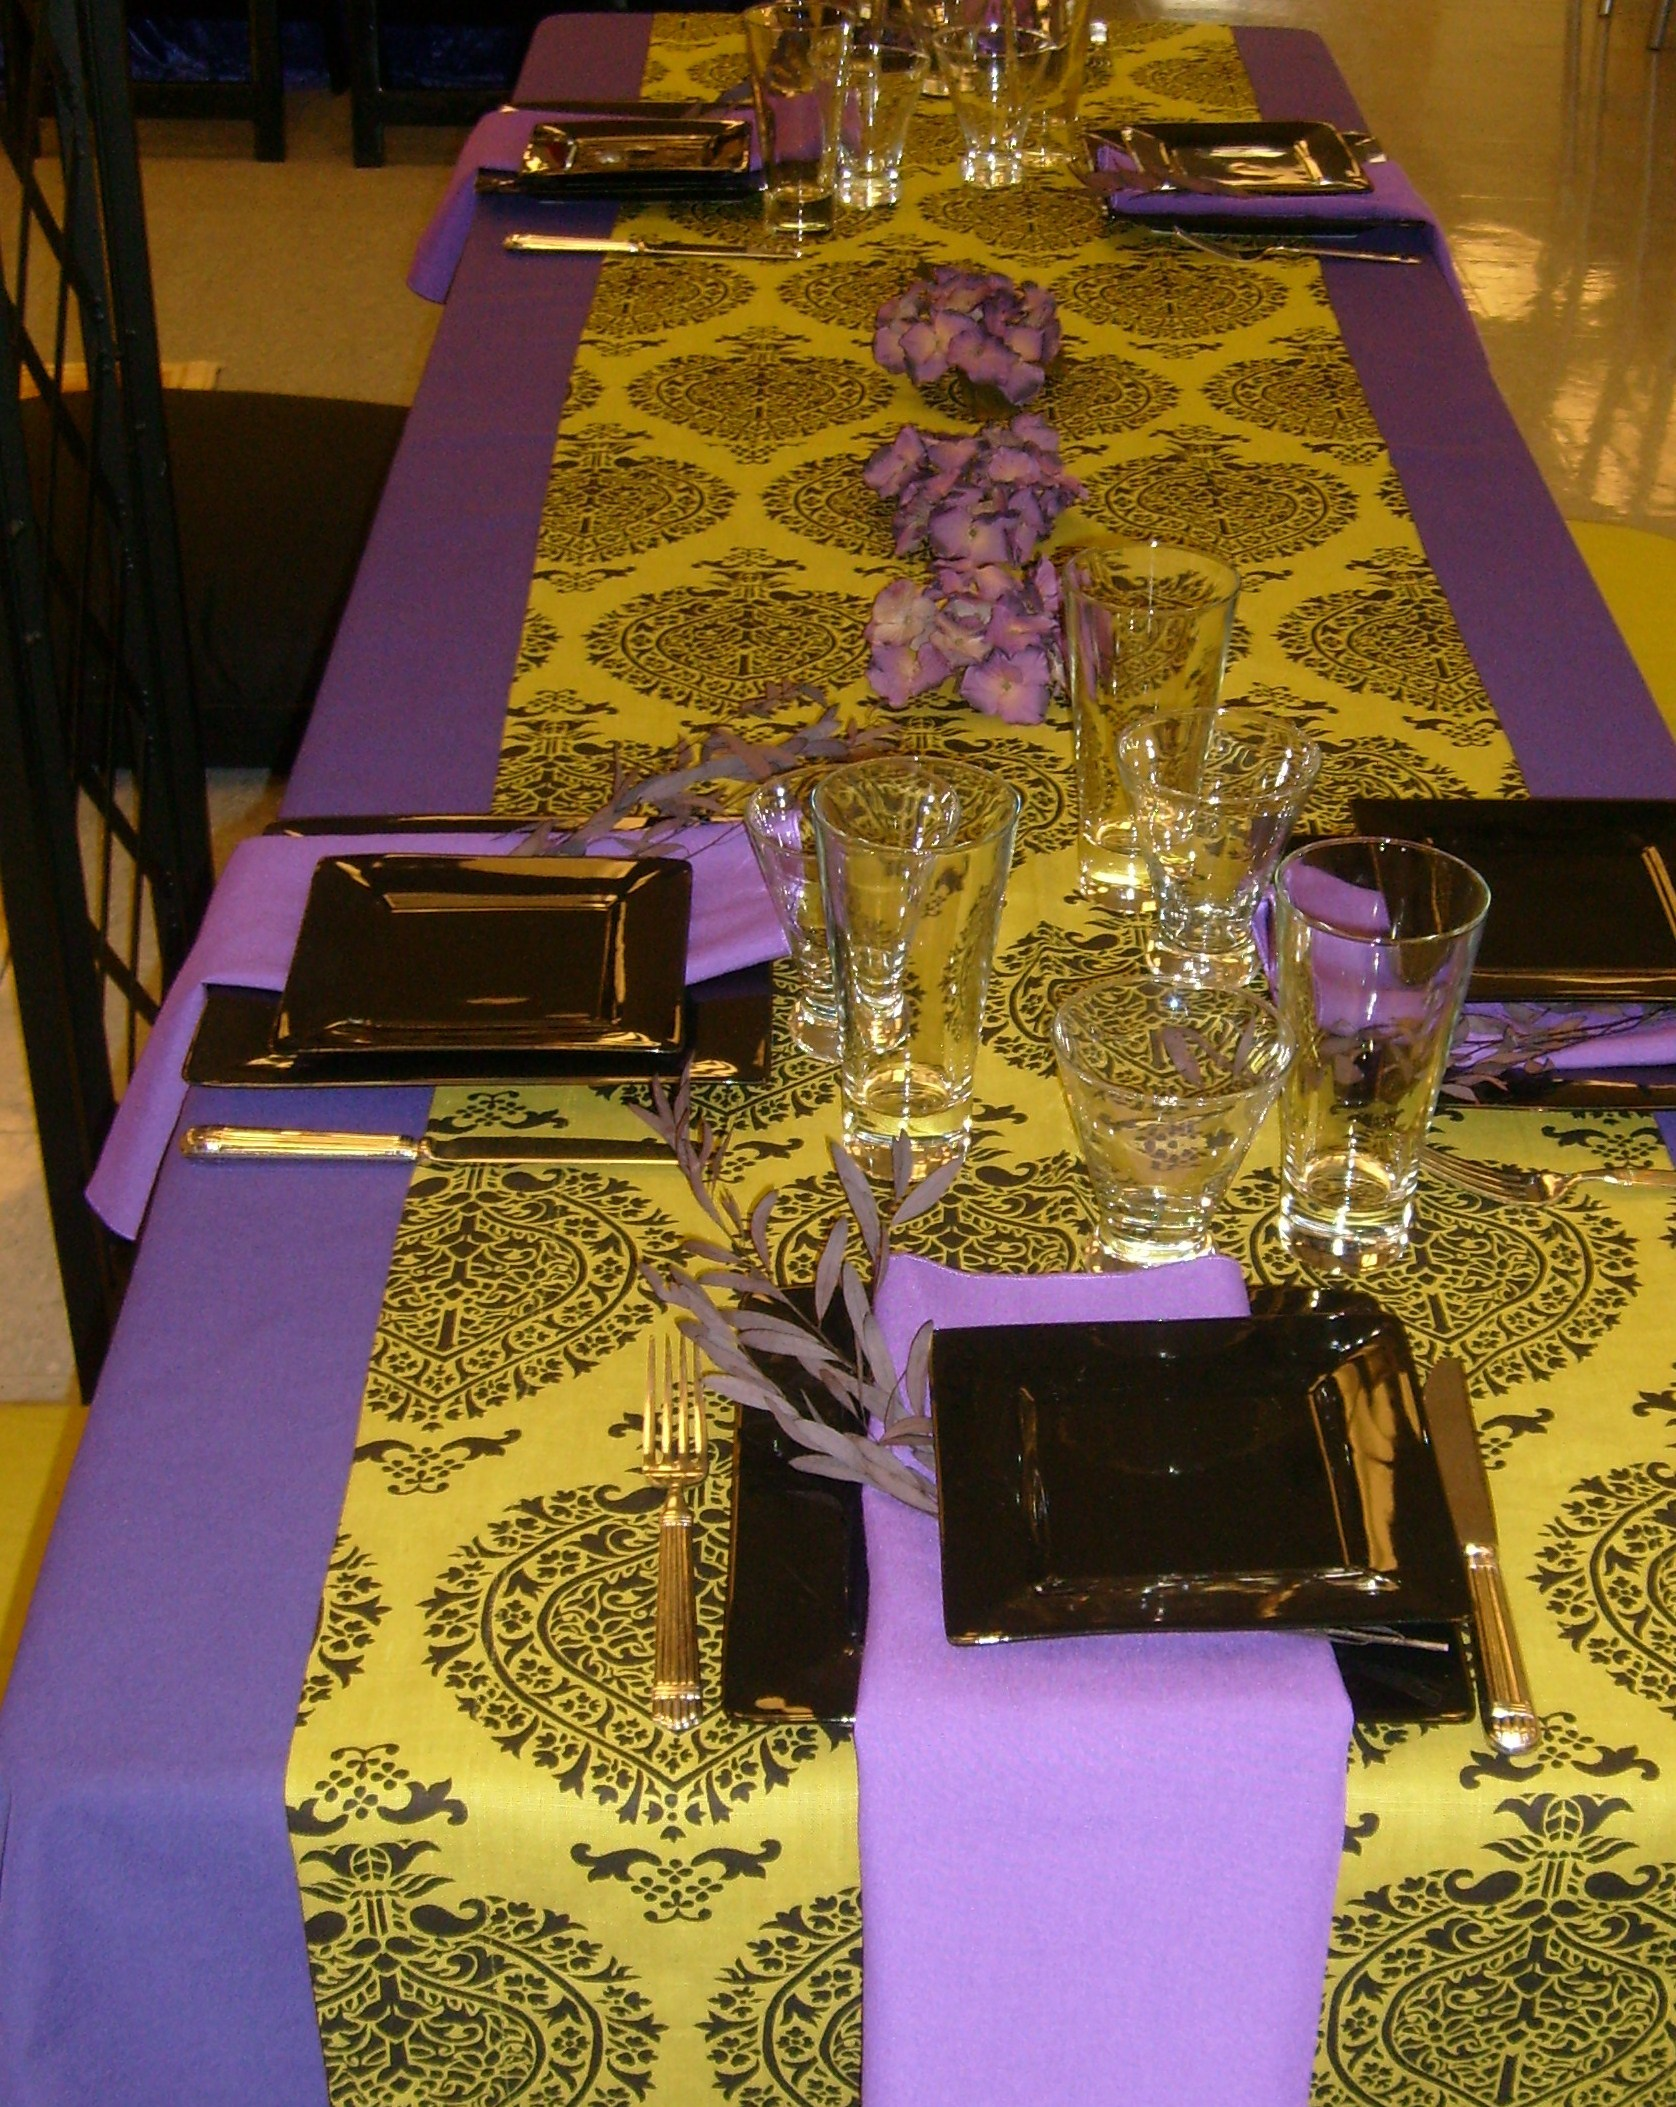 Registry, Square, Place Settings, Drinkware, Glasses, Plates, Cosmo